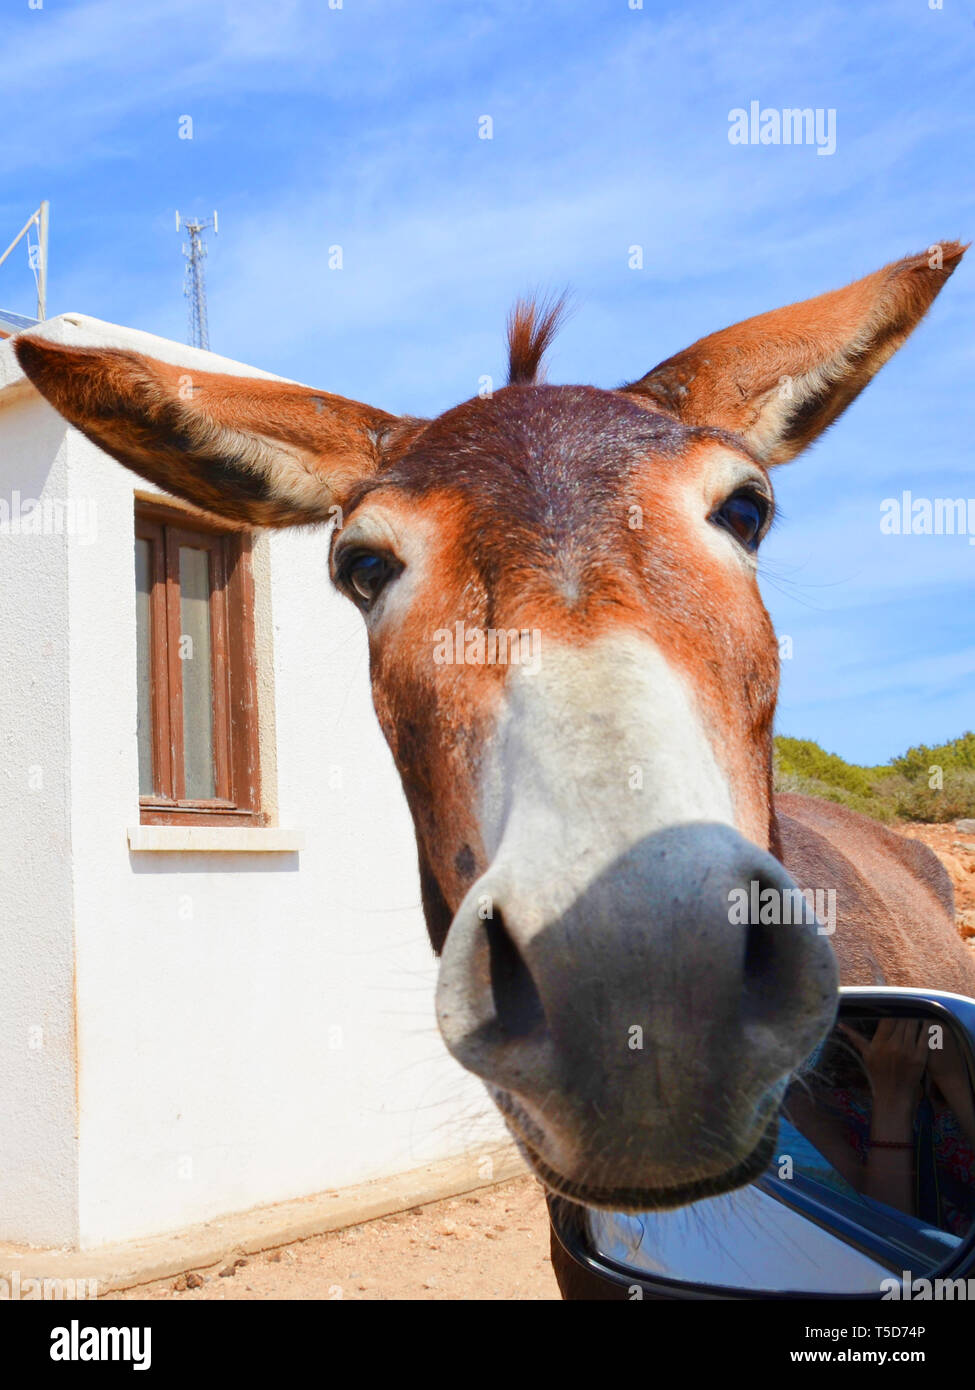 Detail of wild donkeys head taken from an opened car window. The animal is looking directly at camera. Taken in remote Karpas Peninsula, Turkish Northern Cyprus. The donkeys are local attraction. - Stock Image